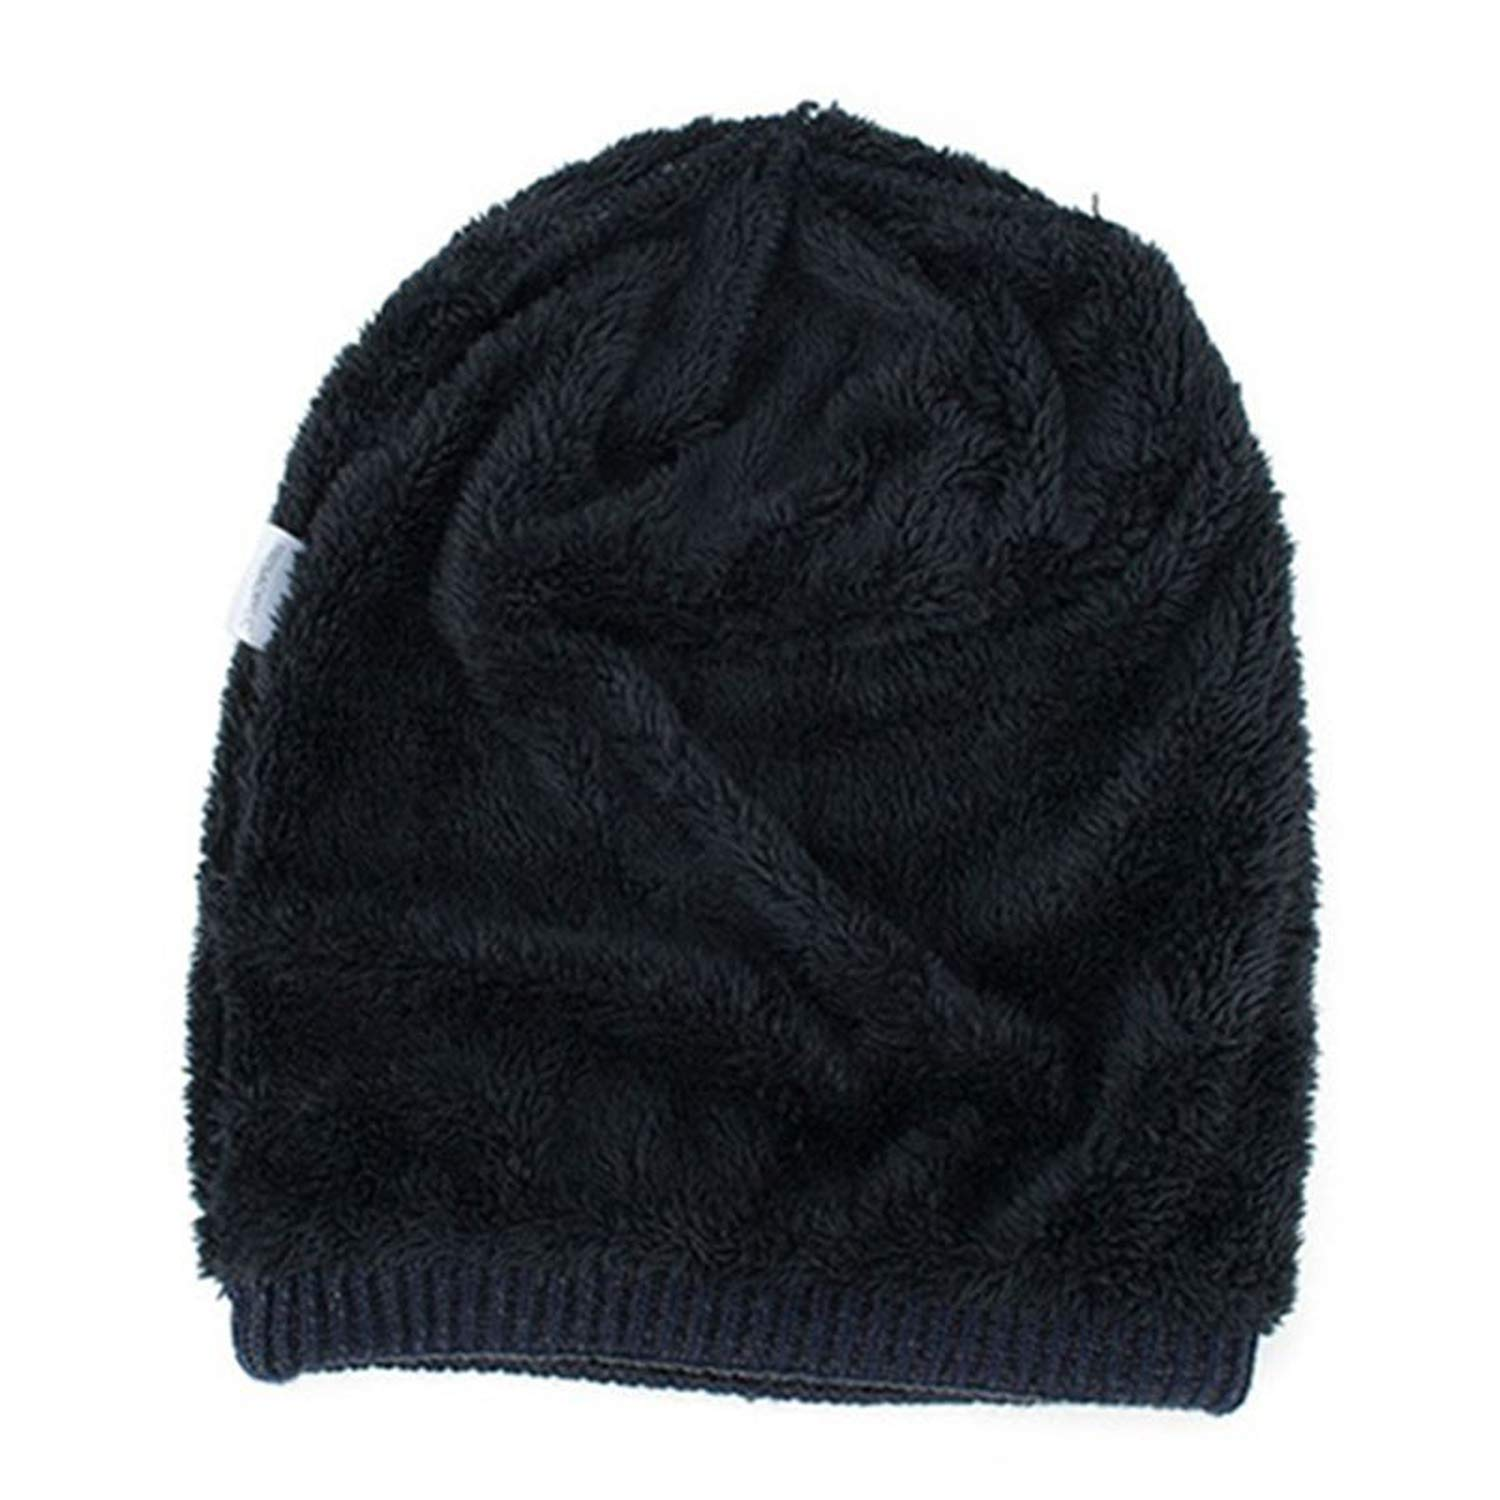 Warm Plush Winter Hats Men Letter Knitted Beanie Hat Men Slouchy Sport Hat Hip Hop Beanies Skull Cap Ski Caps